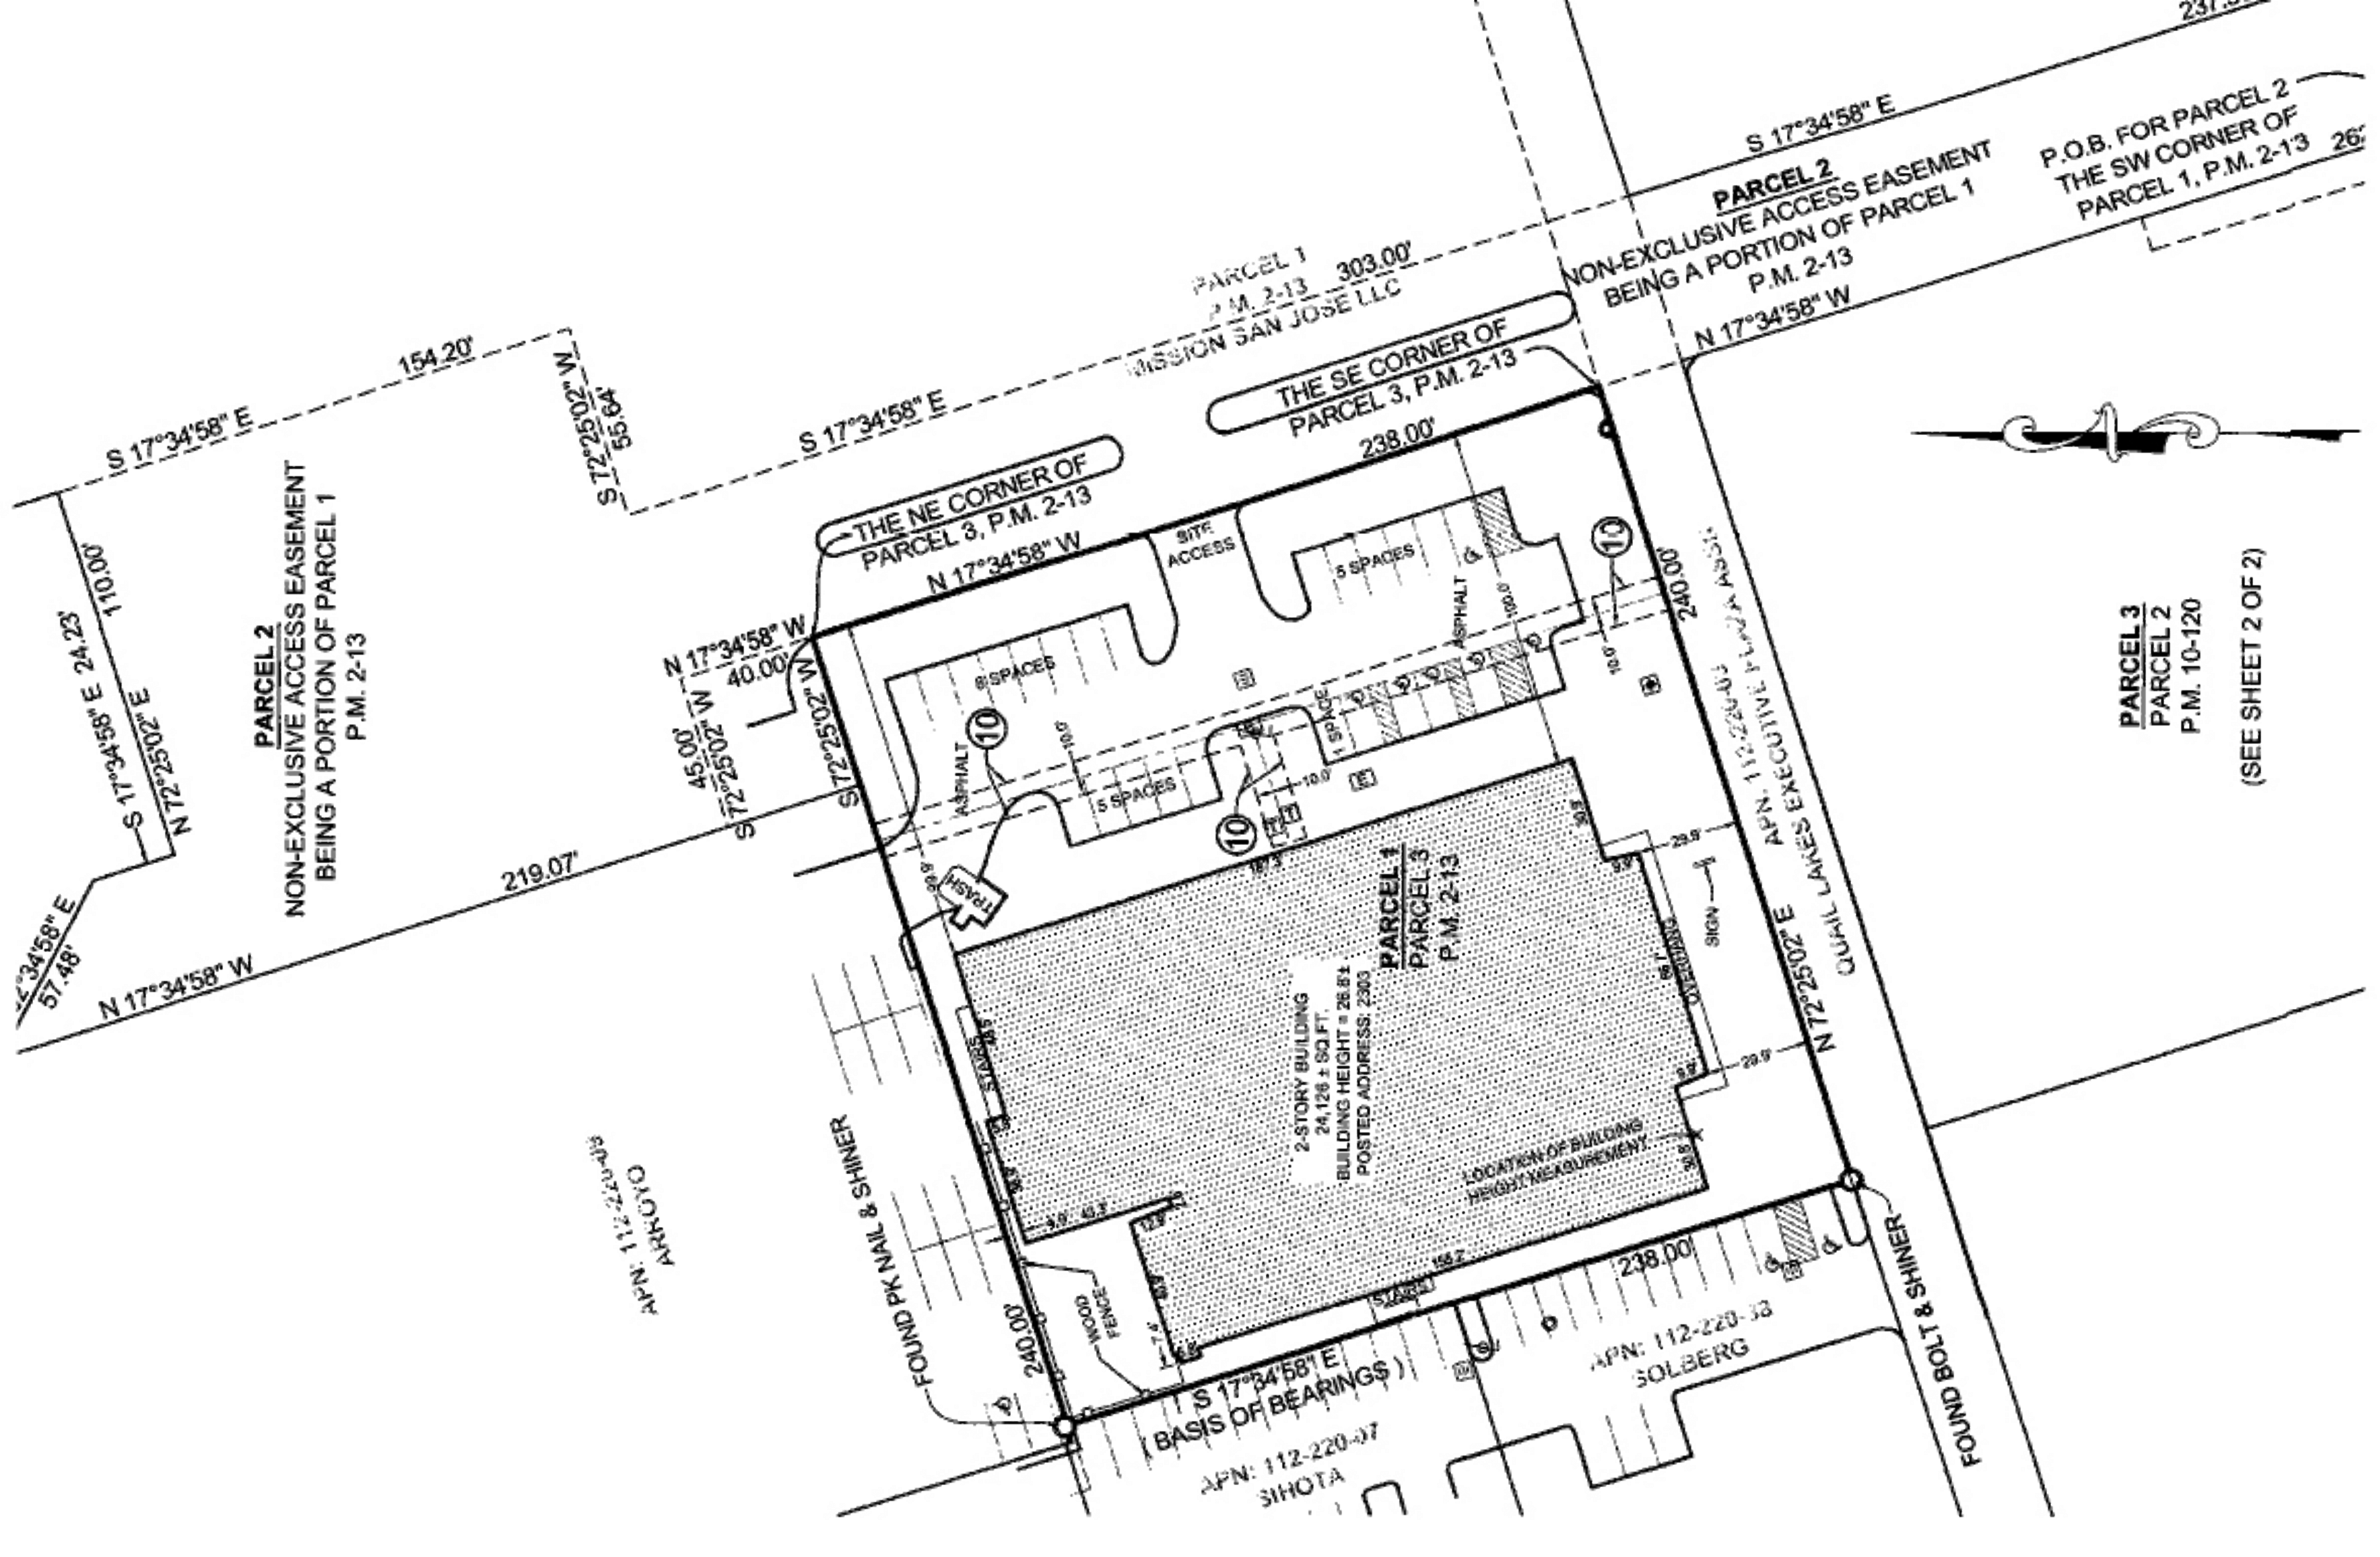 Former Fitness Facility - 2303 W March Lane: site plan